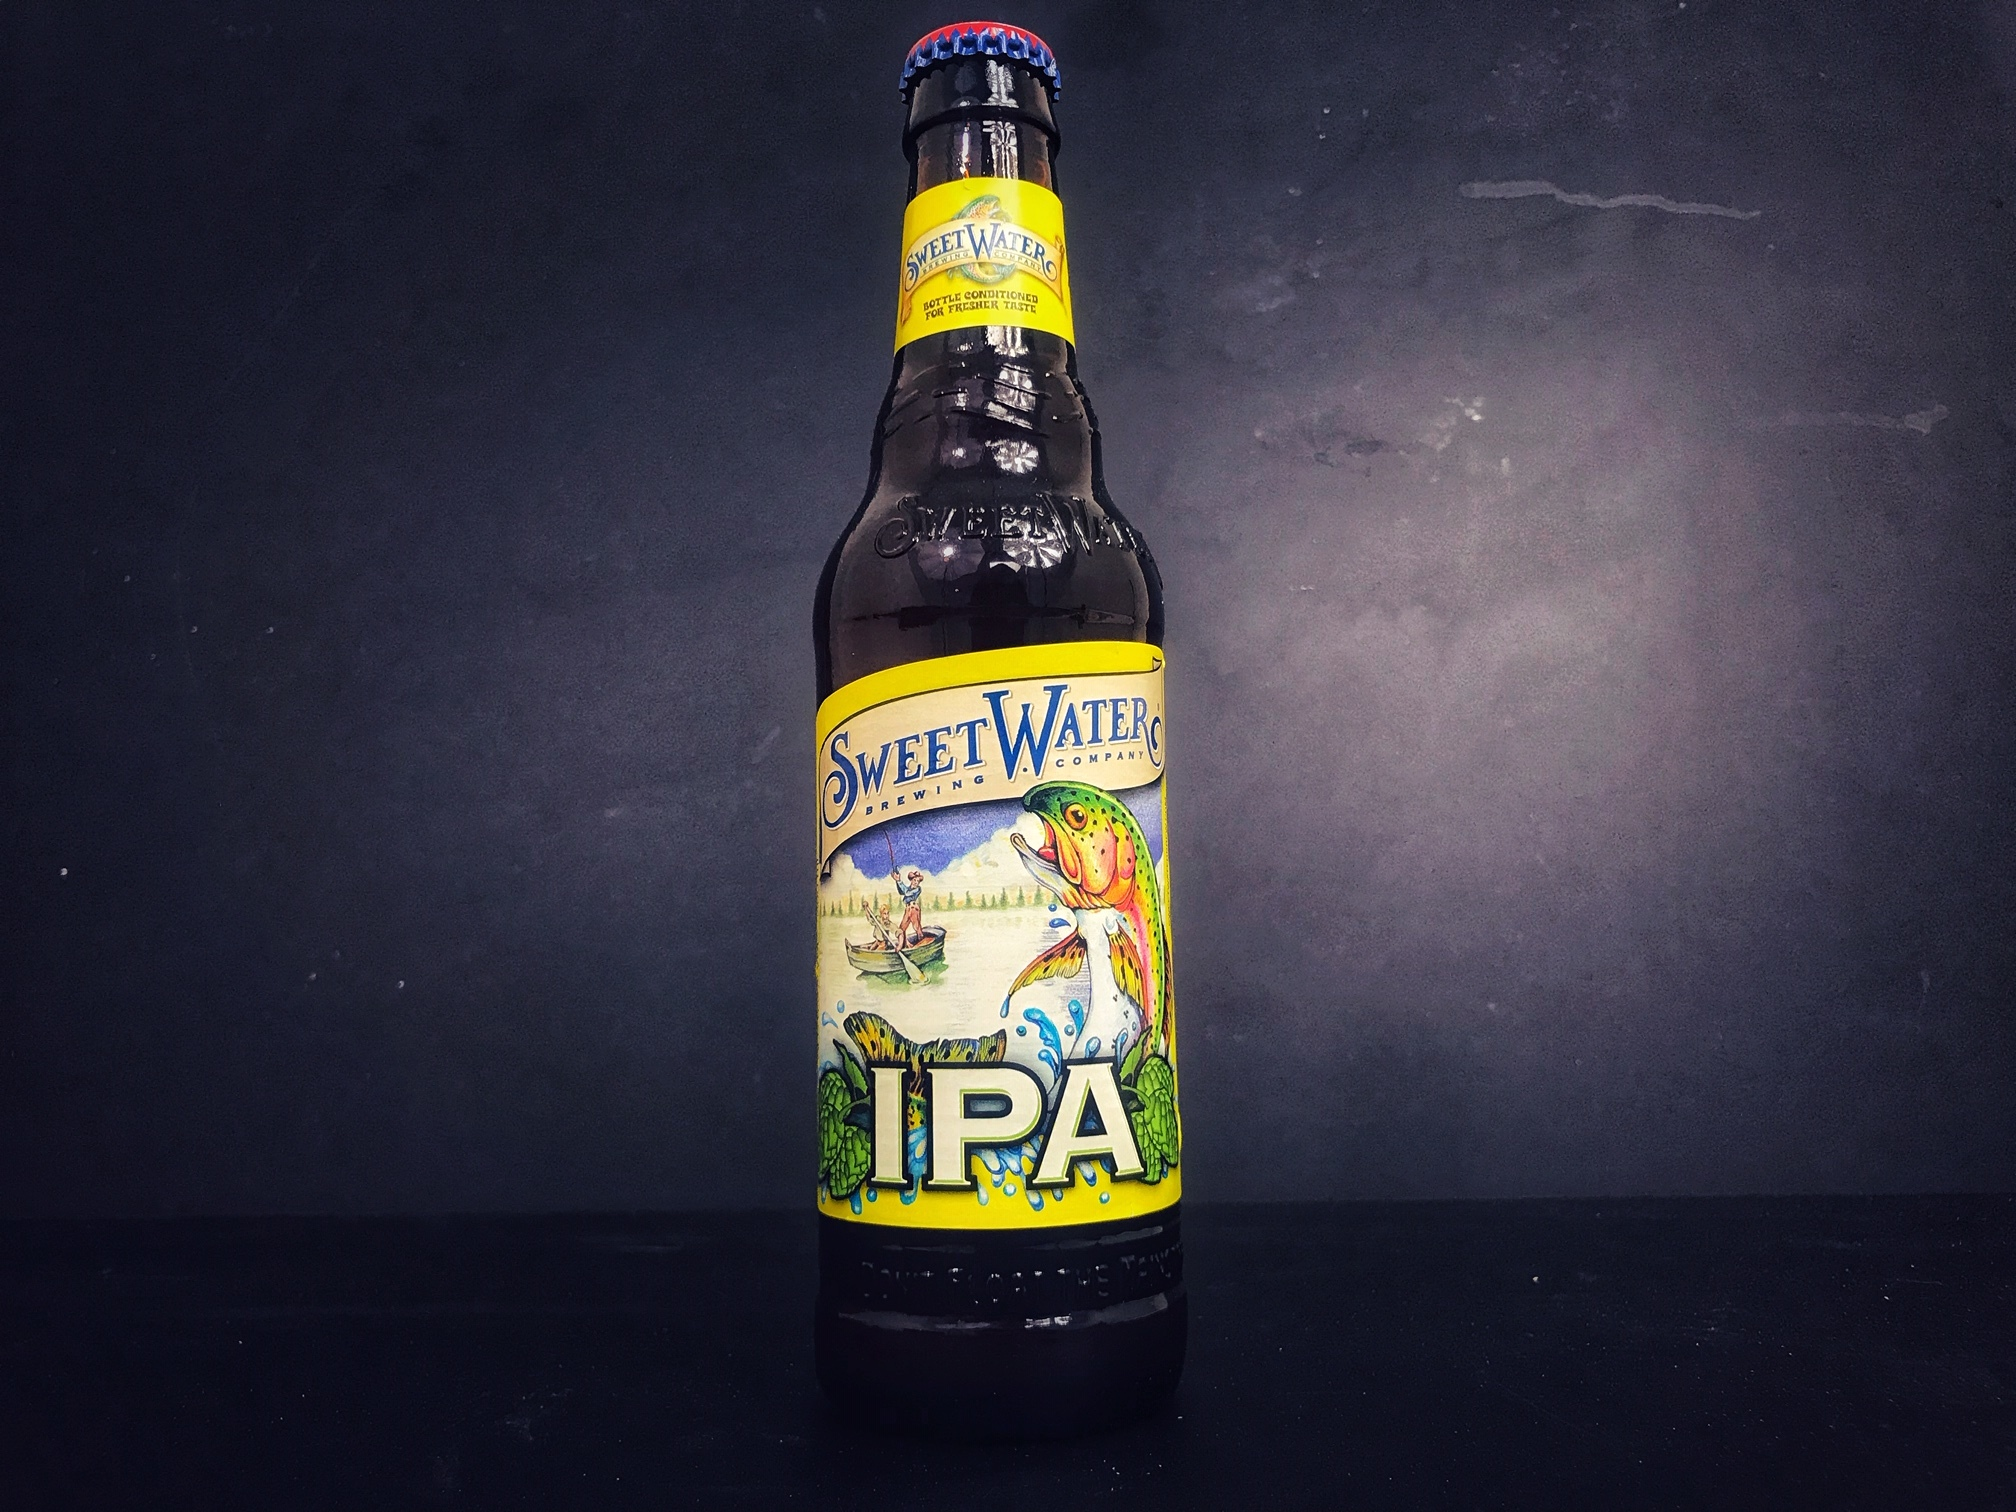 Sweetwater IPA van Sweetwater Brewing Company